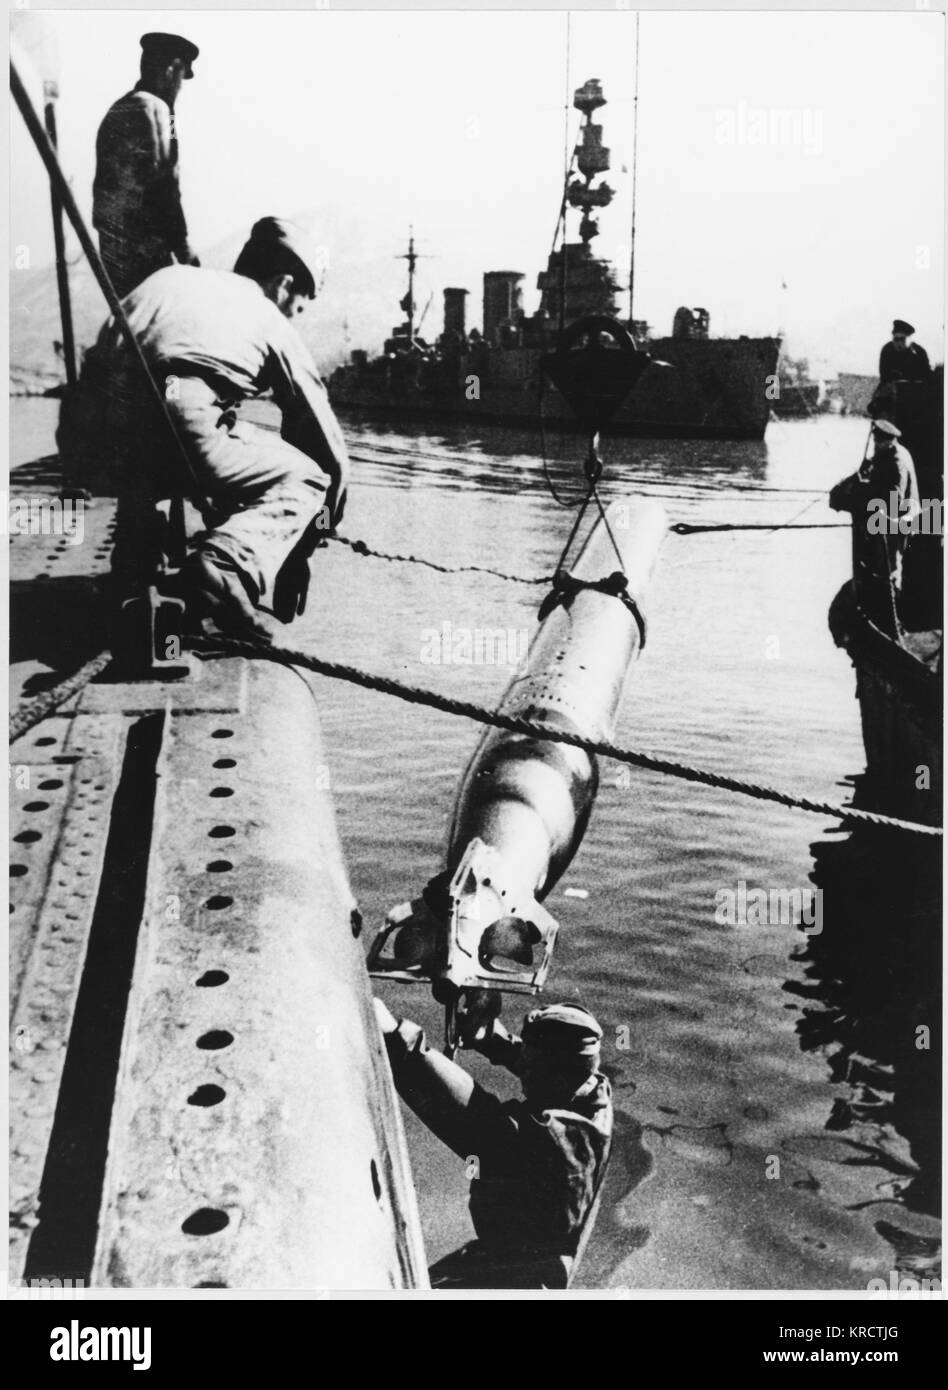 Re-arming a Soviet torpedo boat at Poti, on the Black Sea. - Stock Image